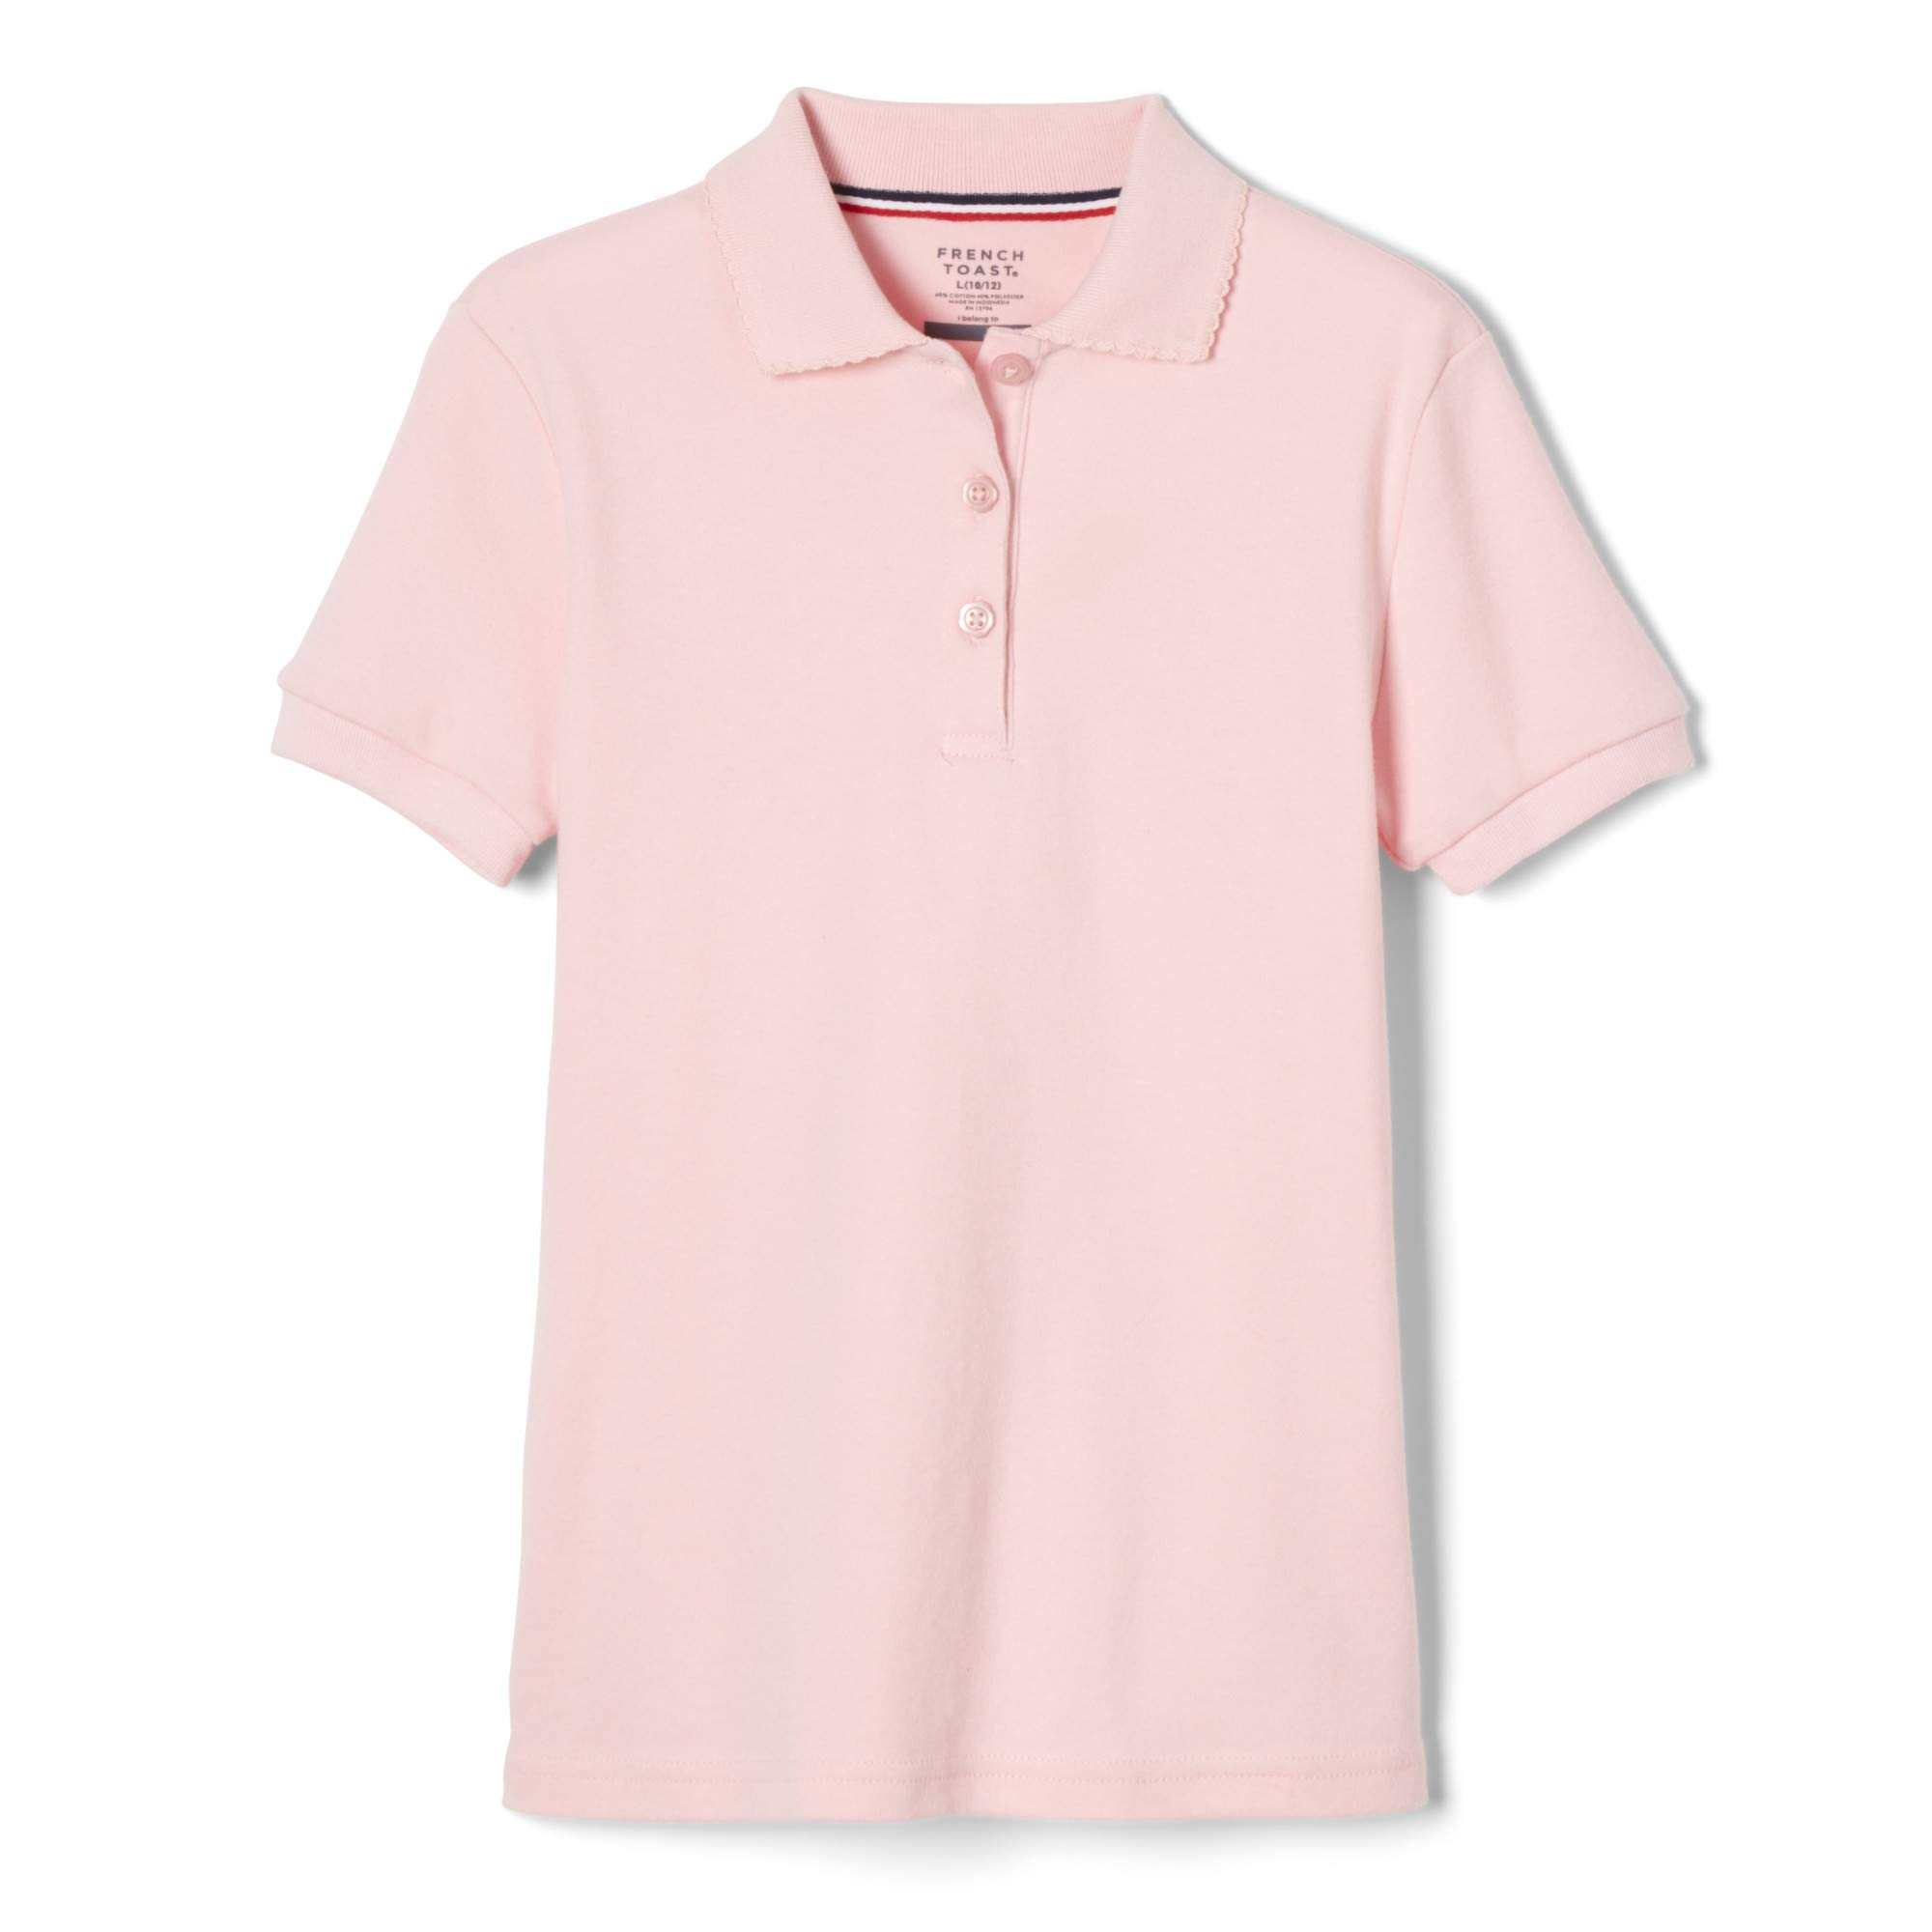 French Toast Girls' Big Short Sleeve Picot Collar Polo Shirt (Standard & Plus), Pink, XX-Large (18/20) by French Toast